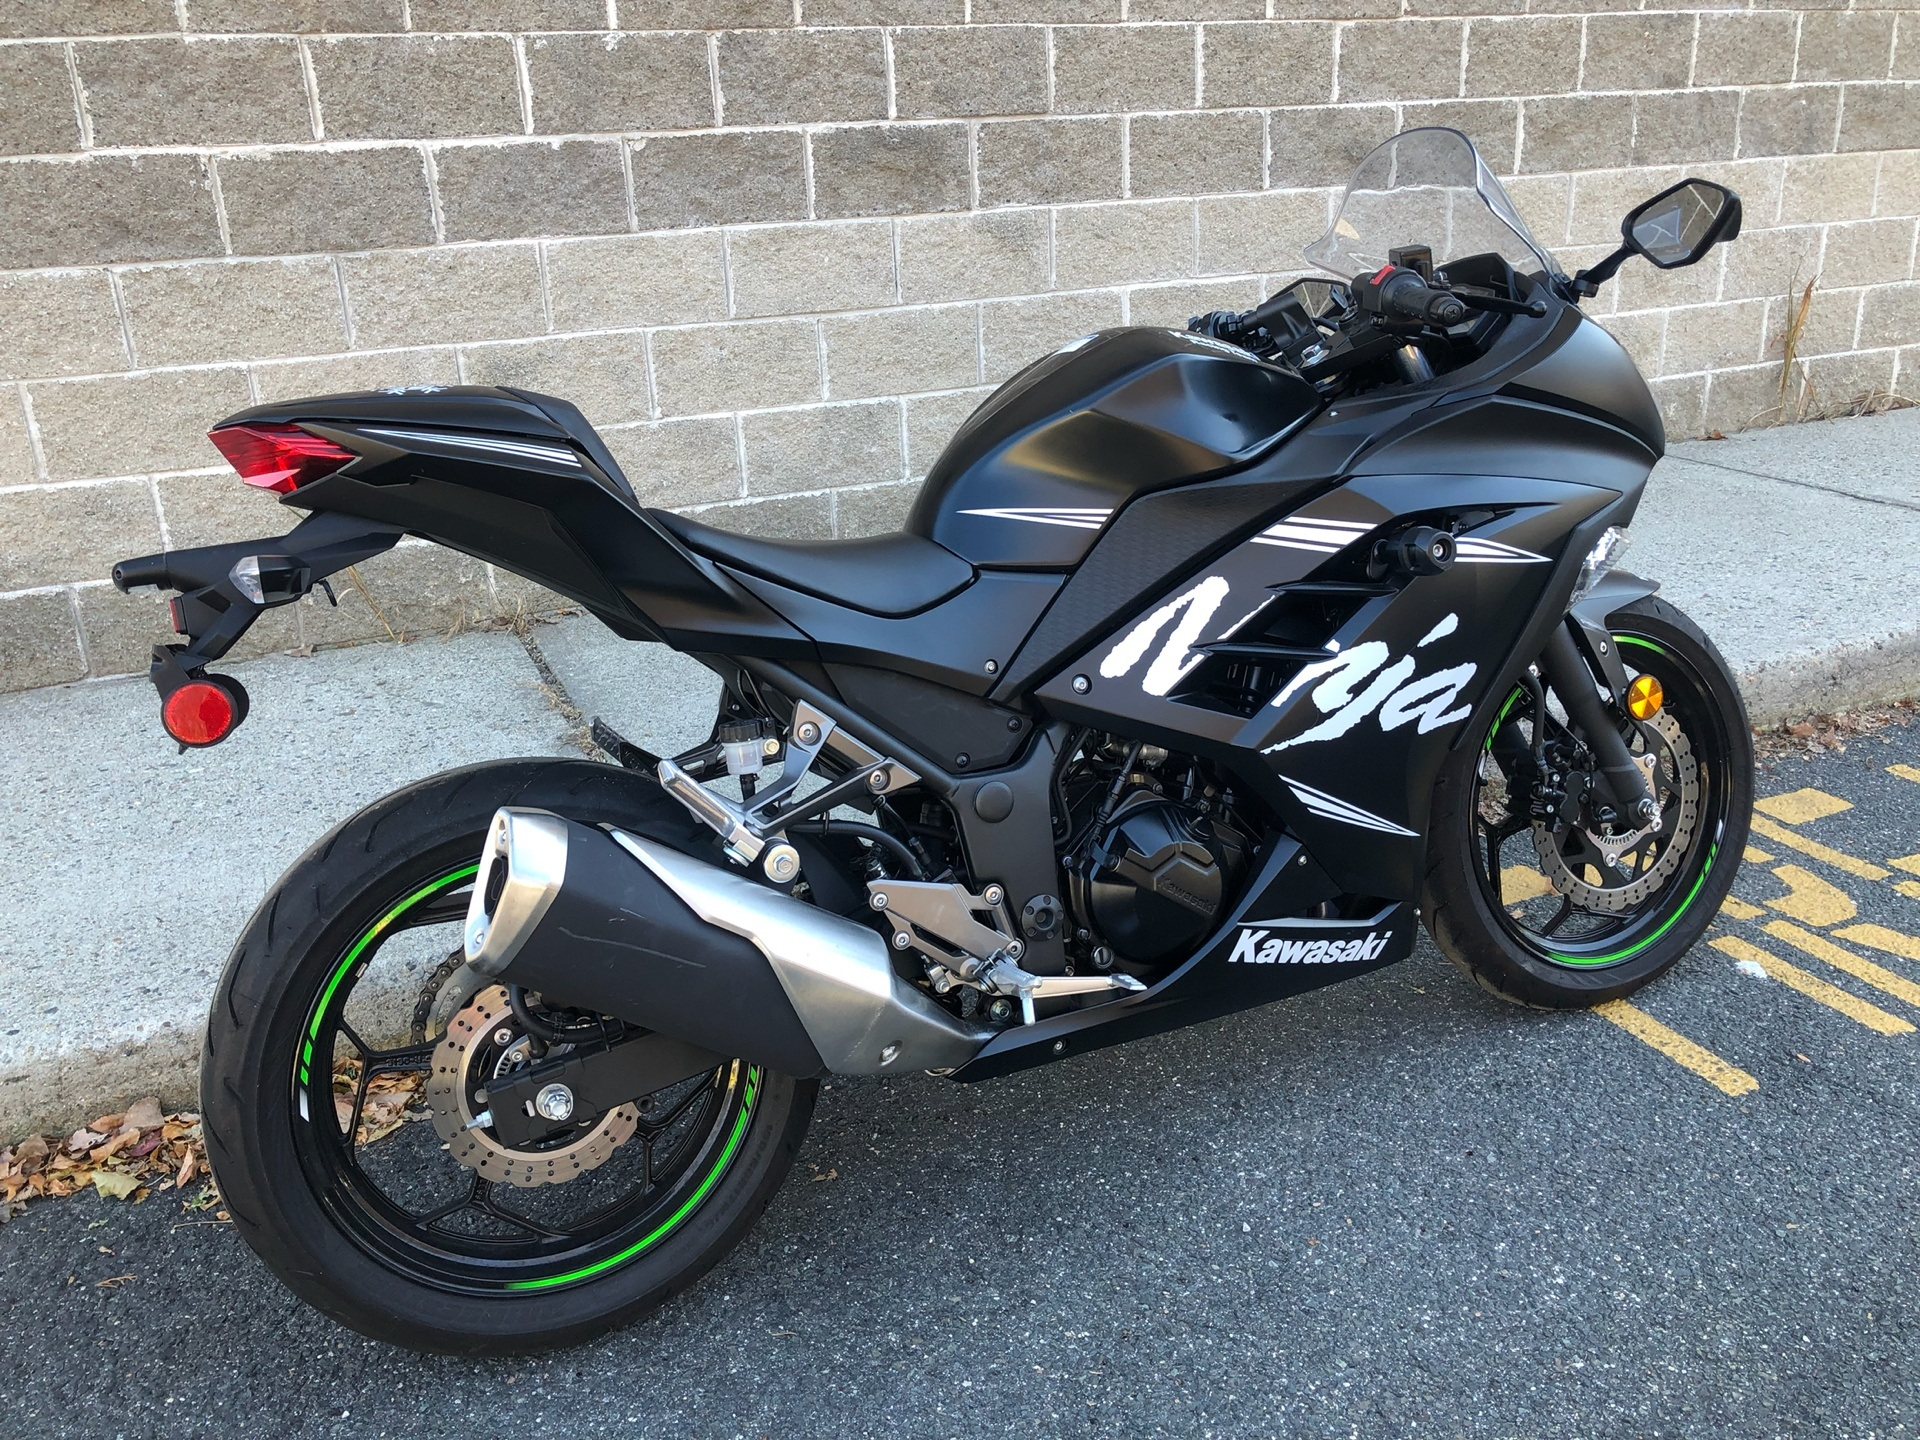 2017 Kawasaki Ninja 300 ABS Winter Test Edition in Enfield, Connecticut - Photo 4